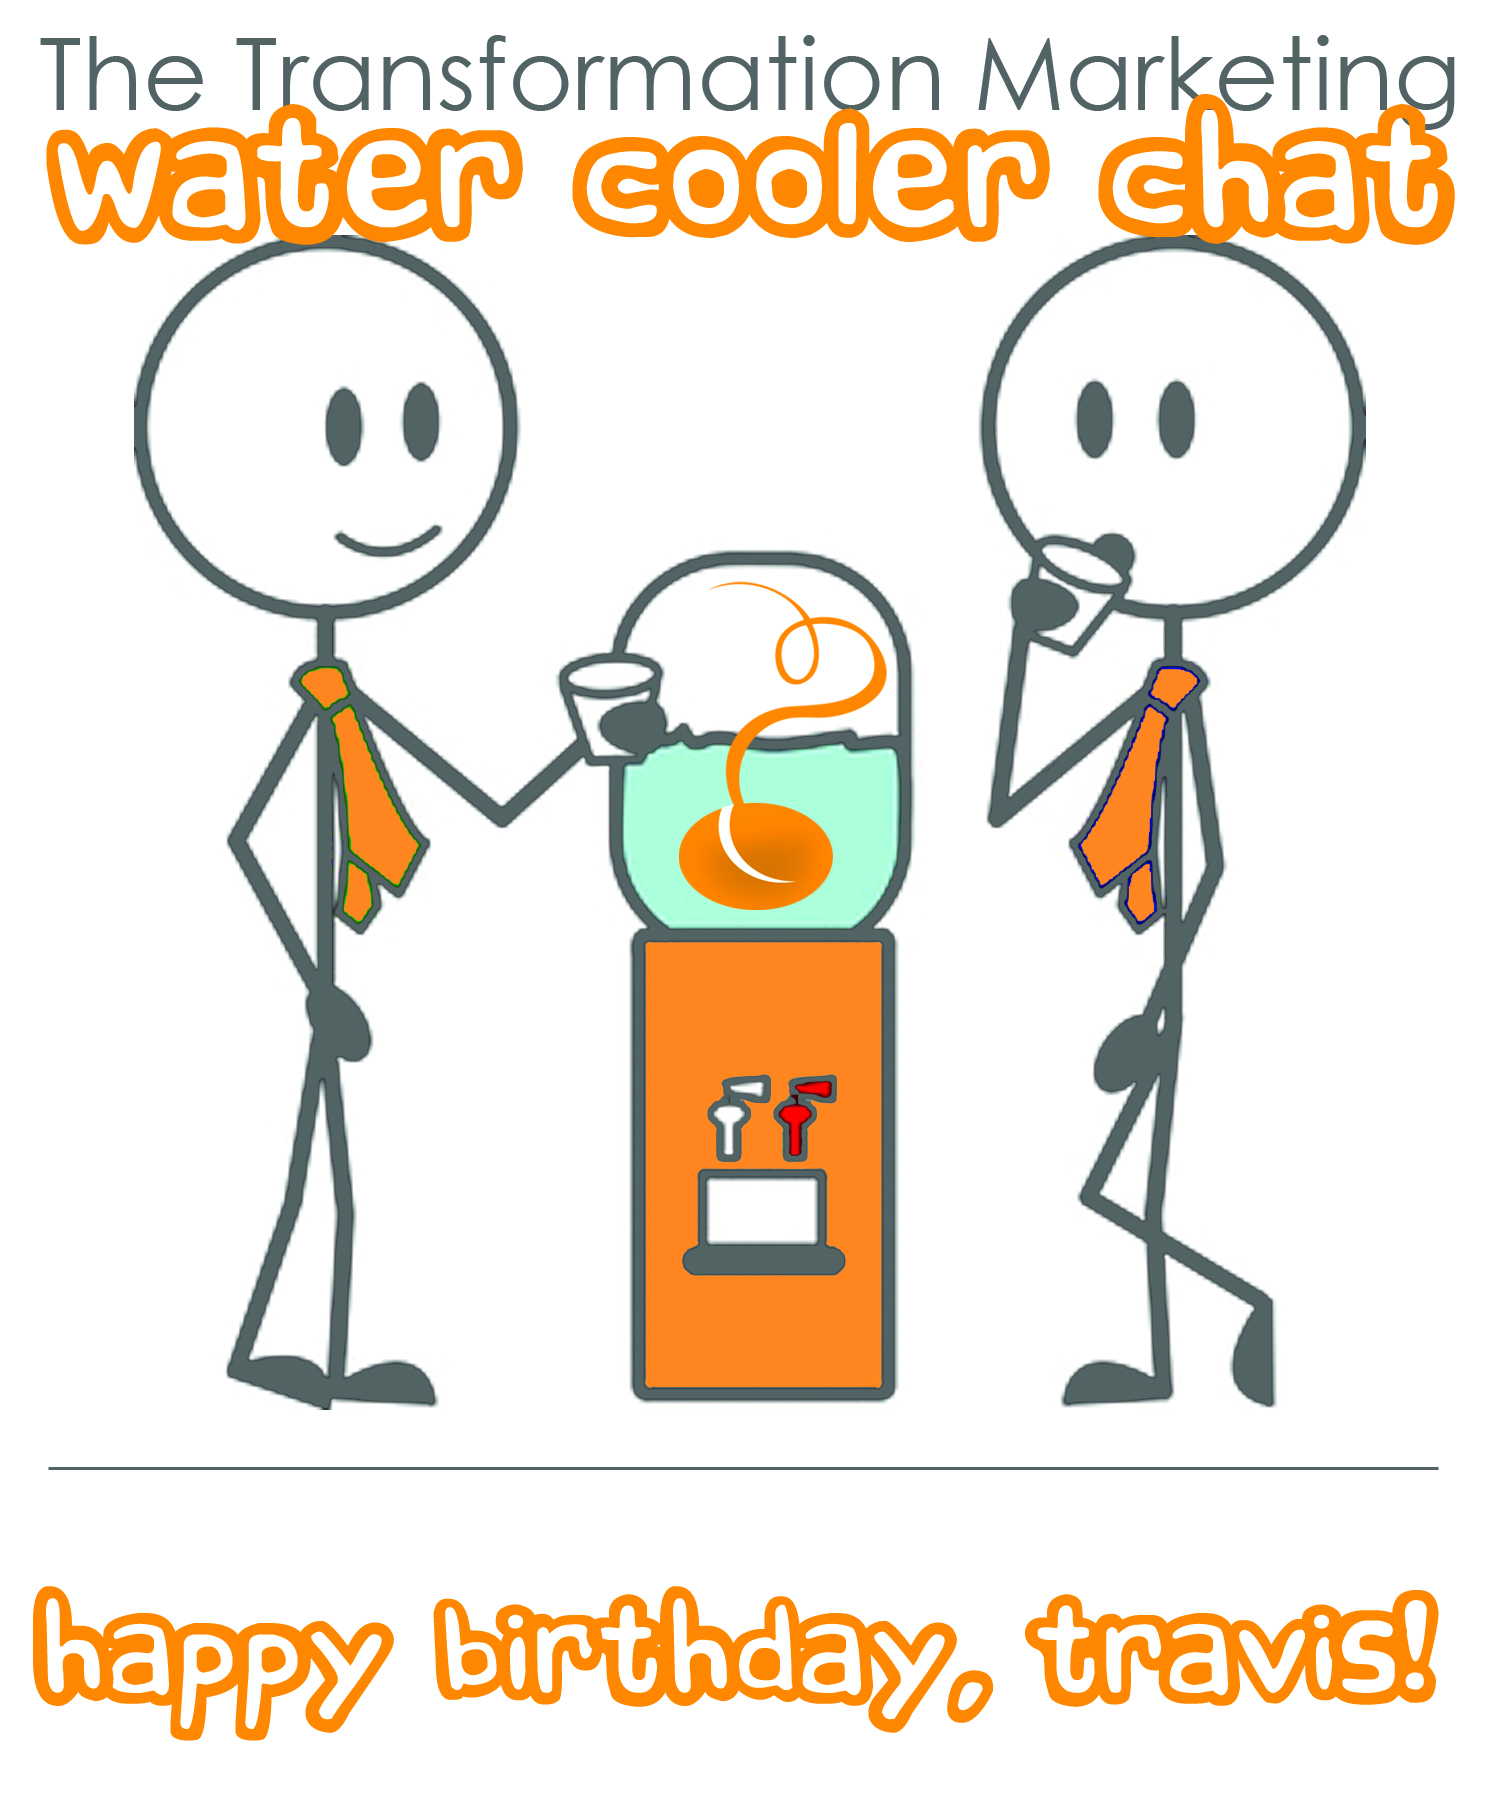 The Transformation Marketing Water Cooler Chat - happy birthday, travis!